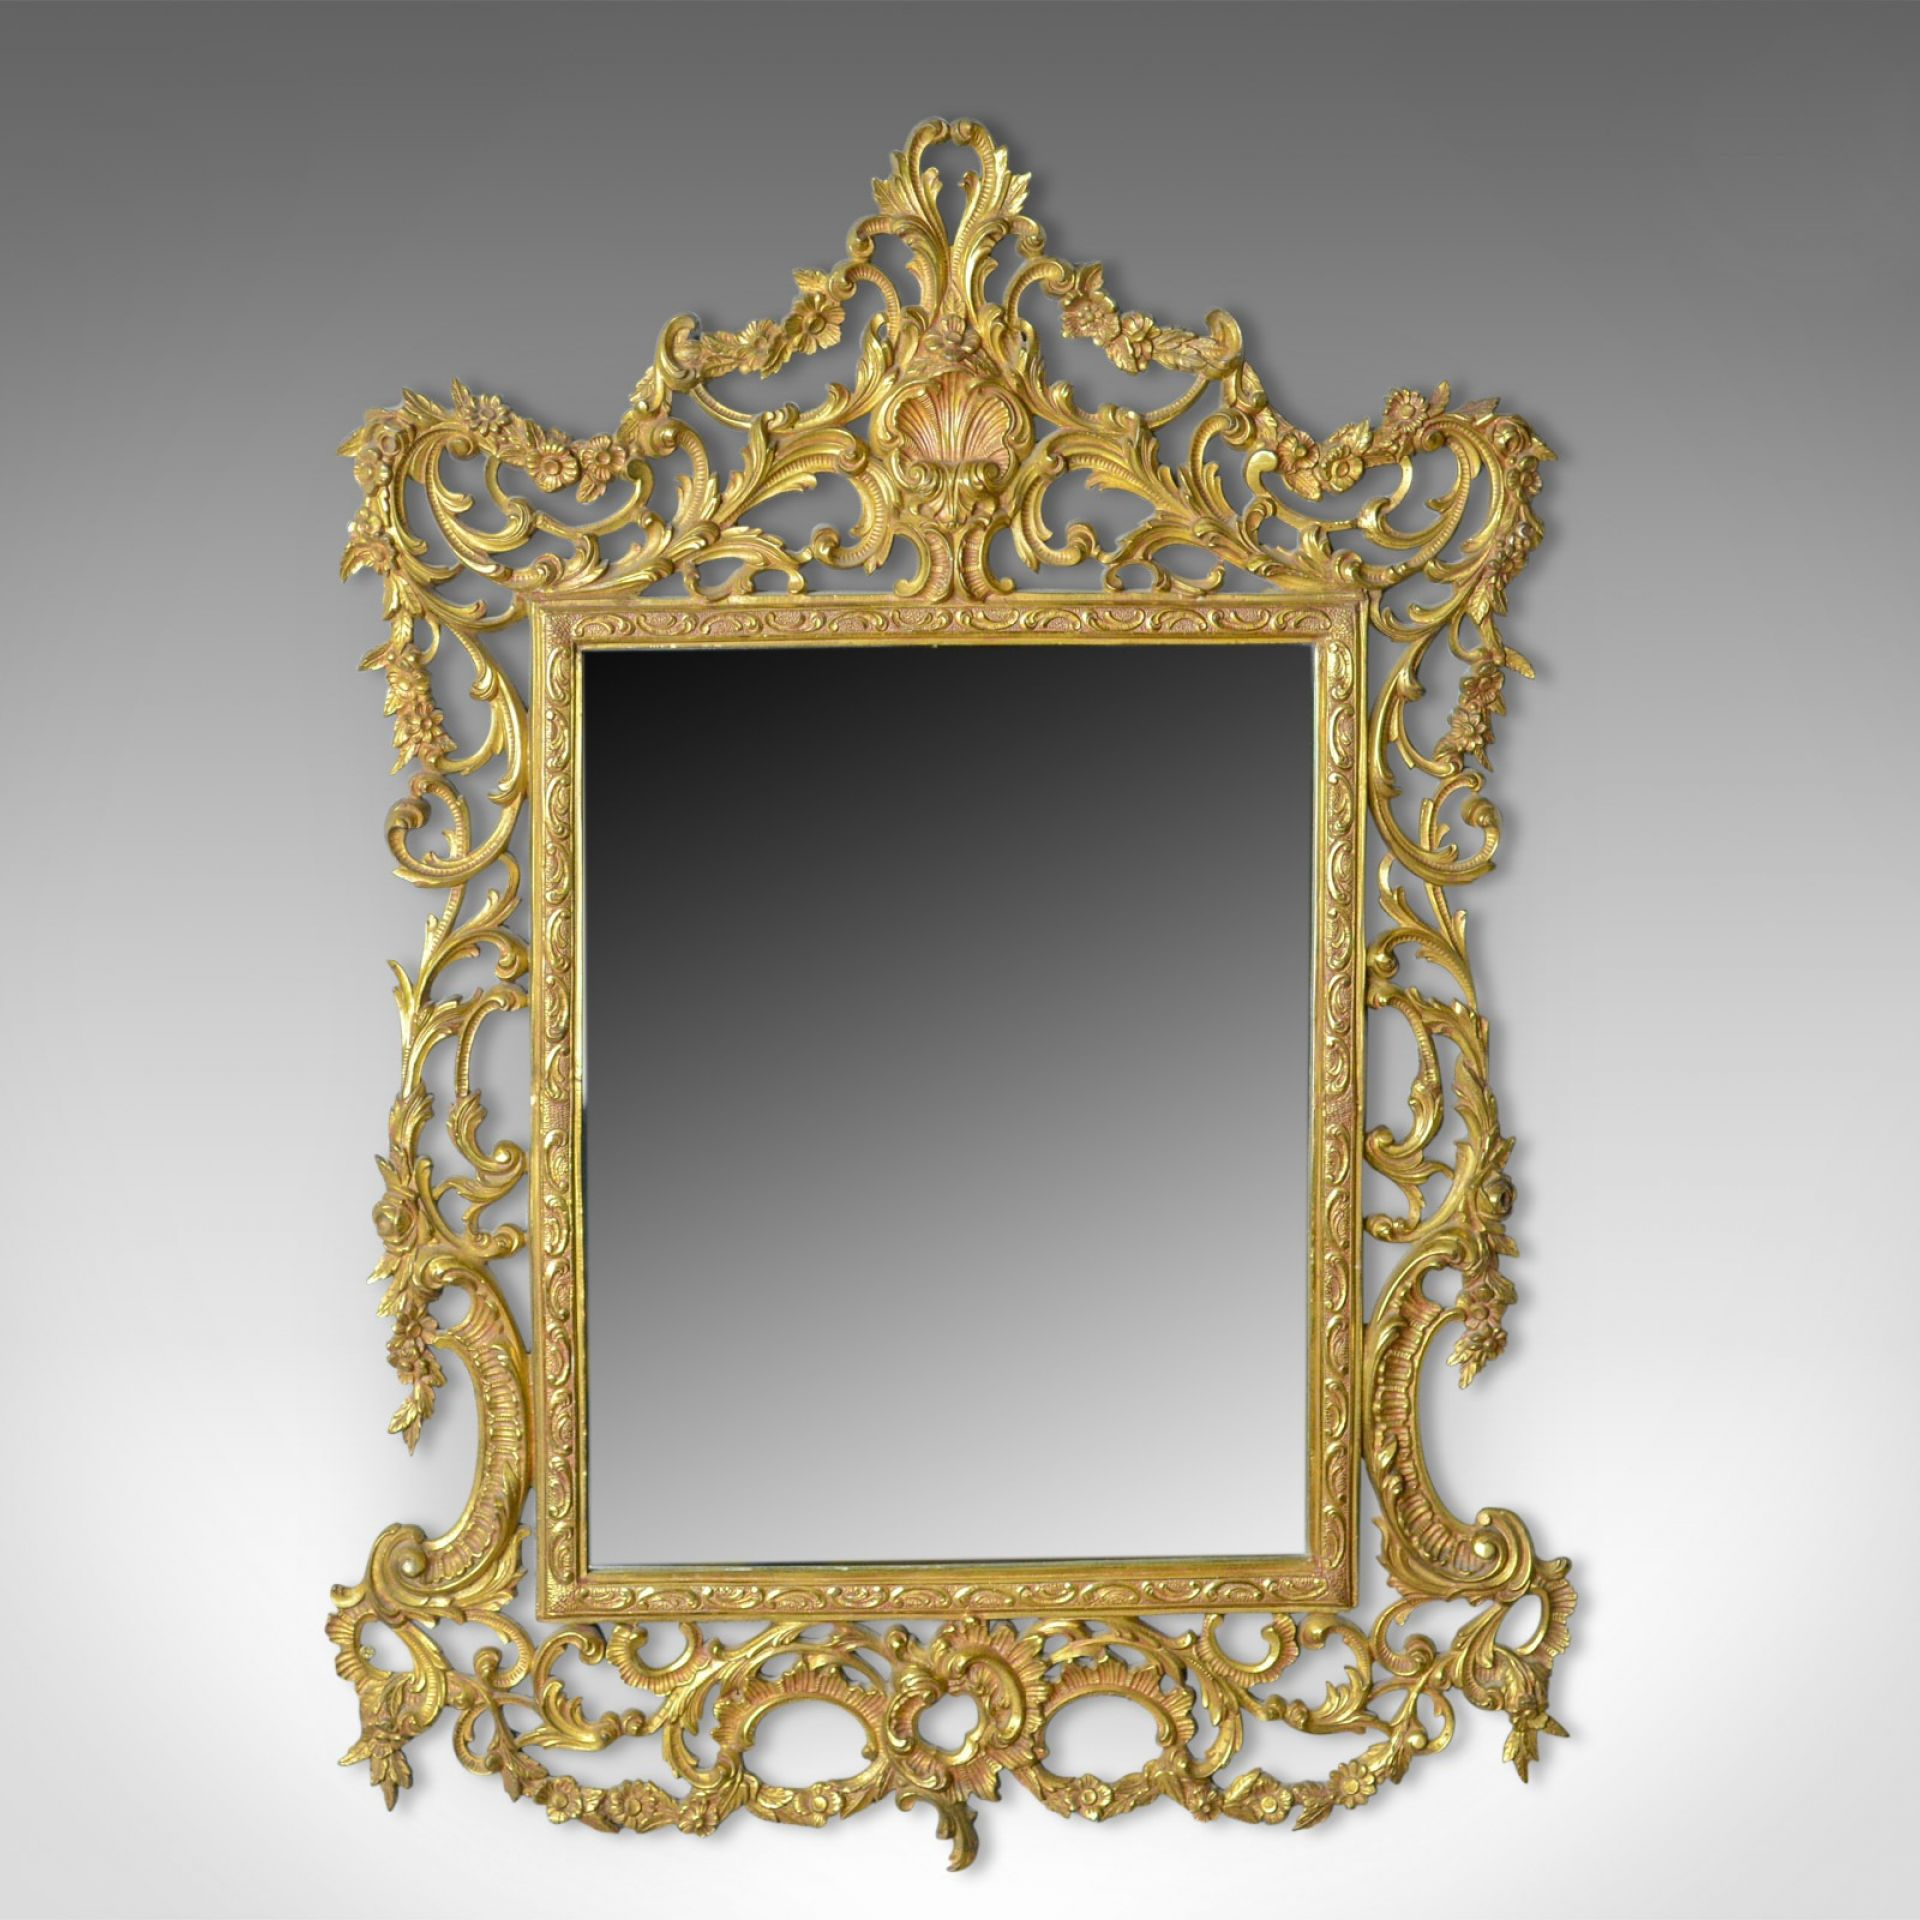 Vintage Wall Mirror, English, Rococo Revival Manner, Art Deco Period, Circa 1940